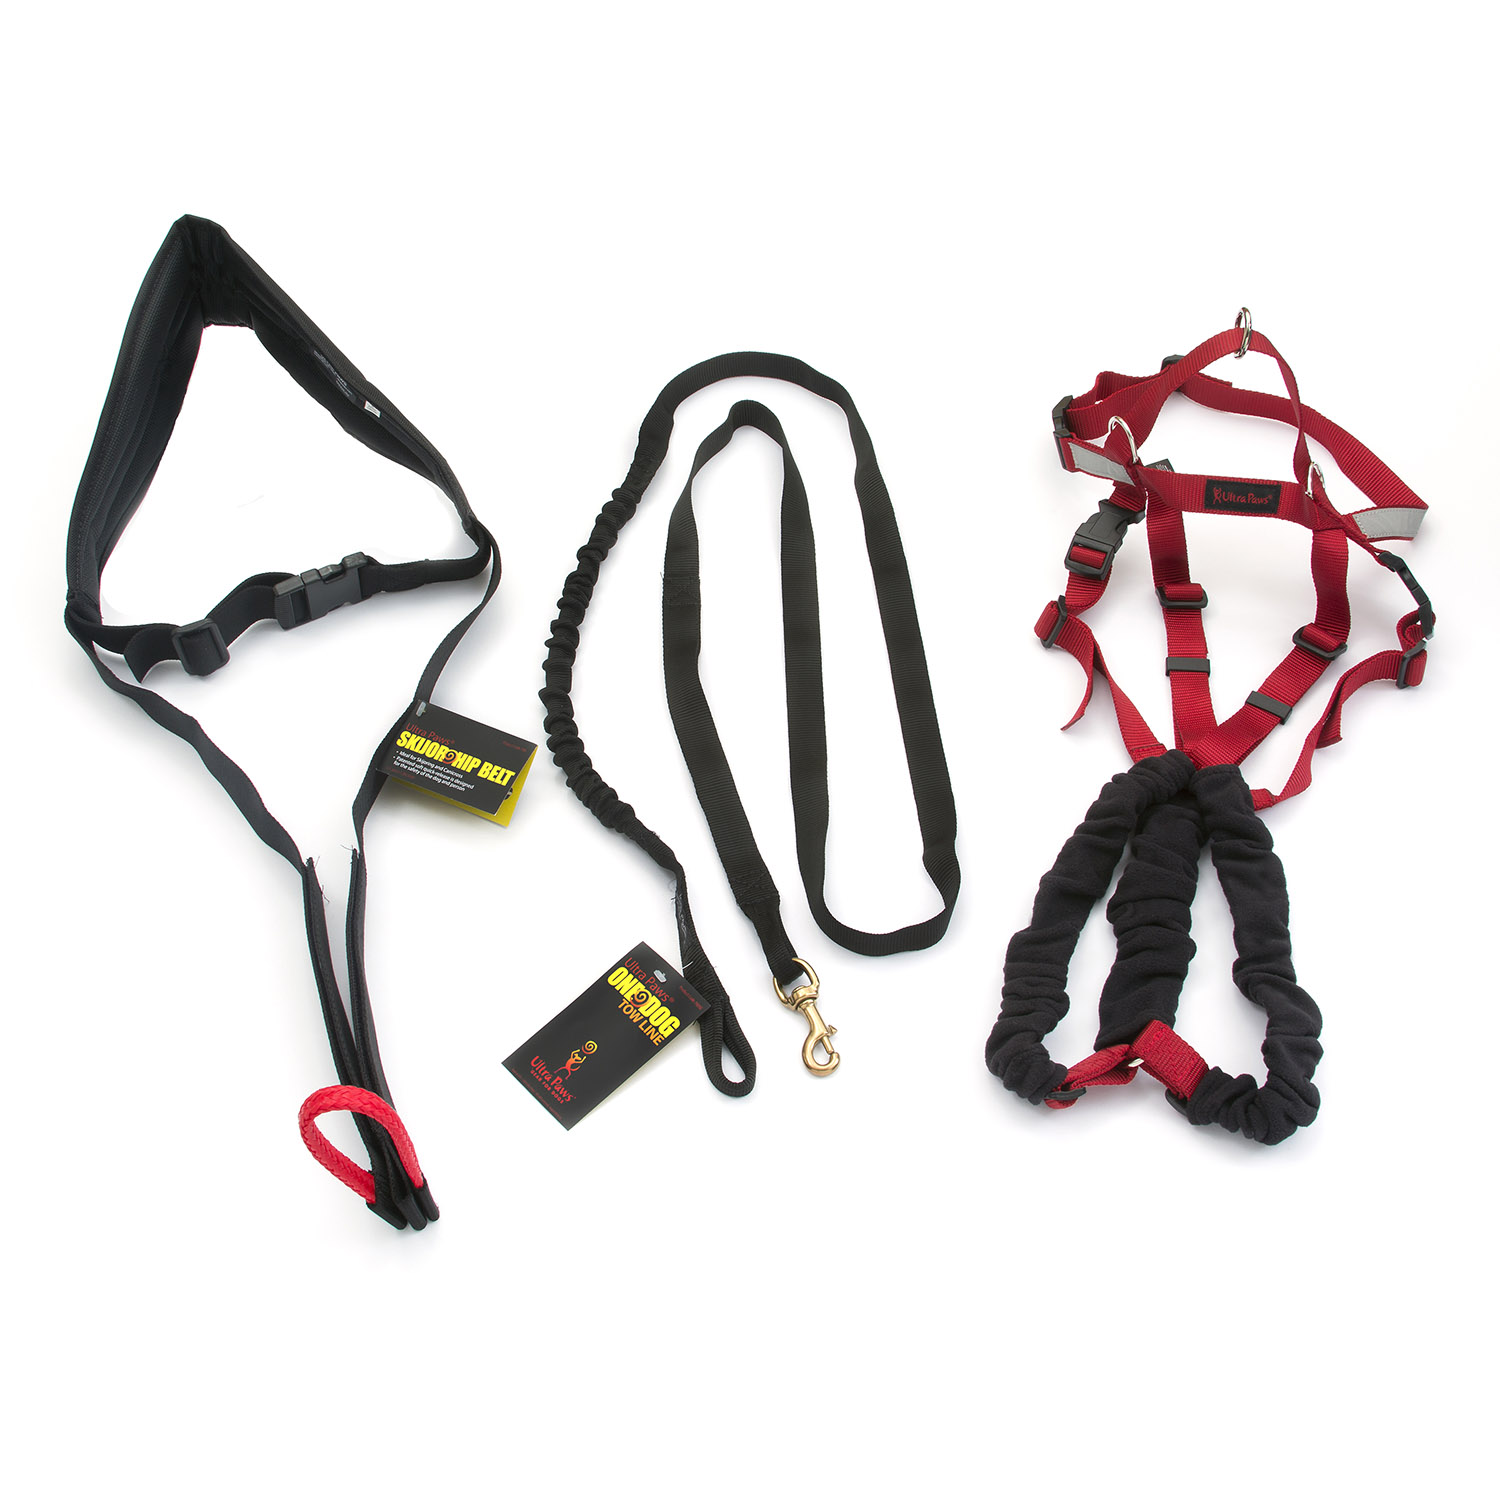 Ultra Paws Skijor Package